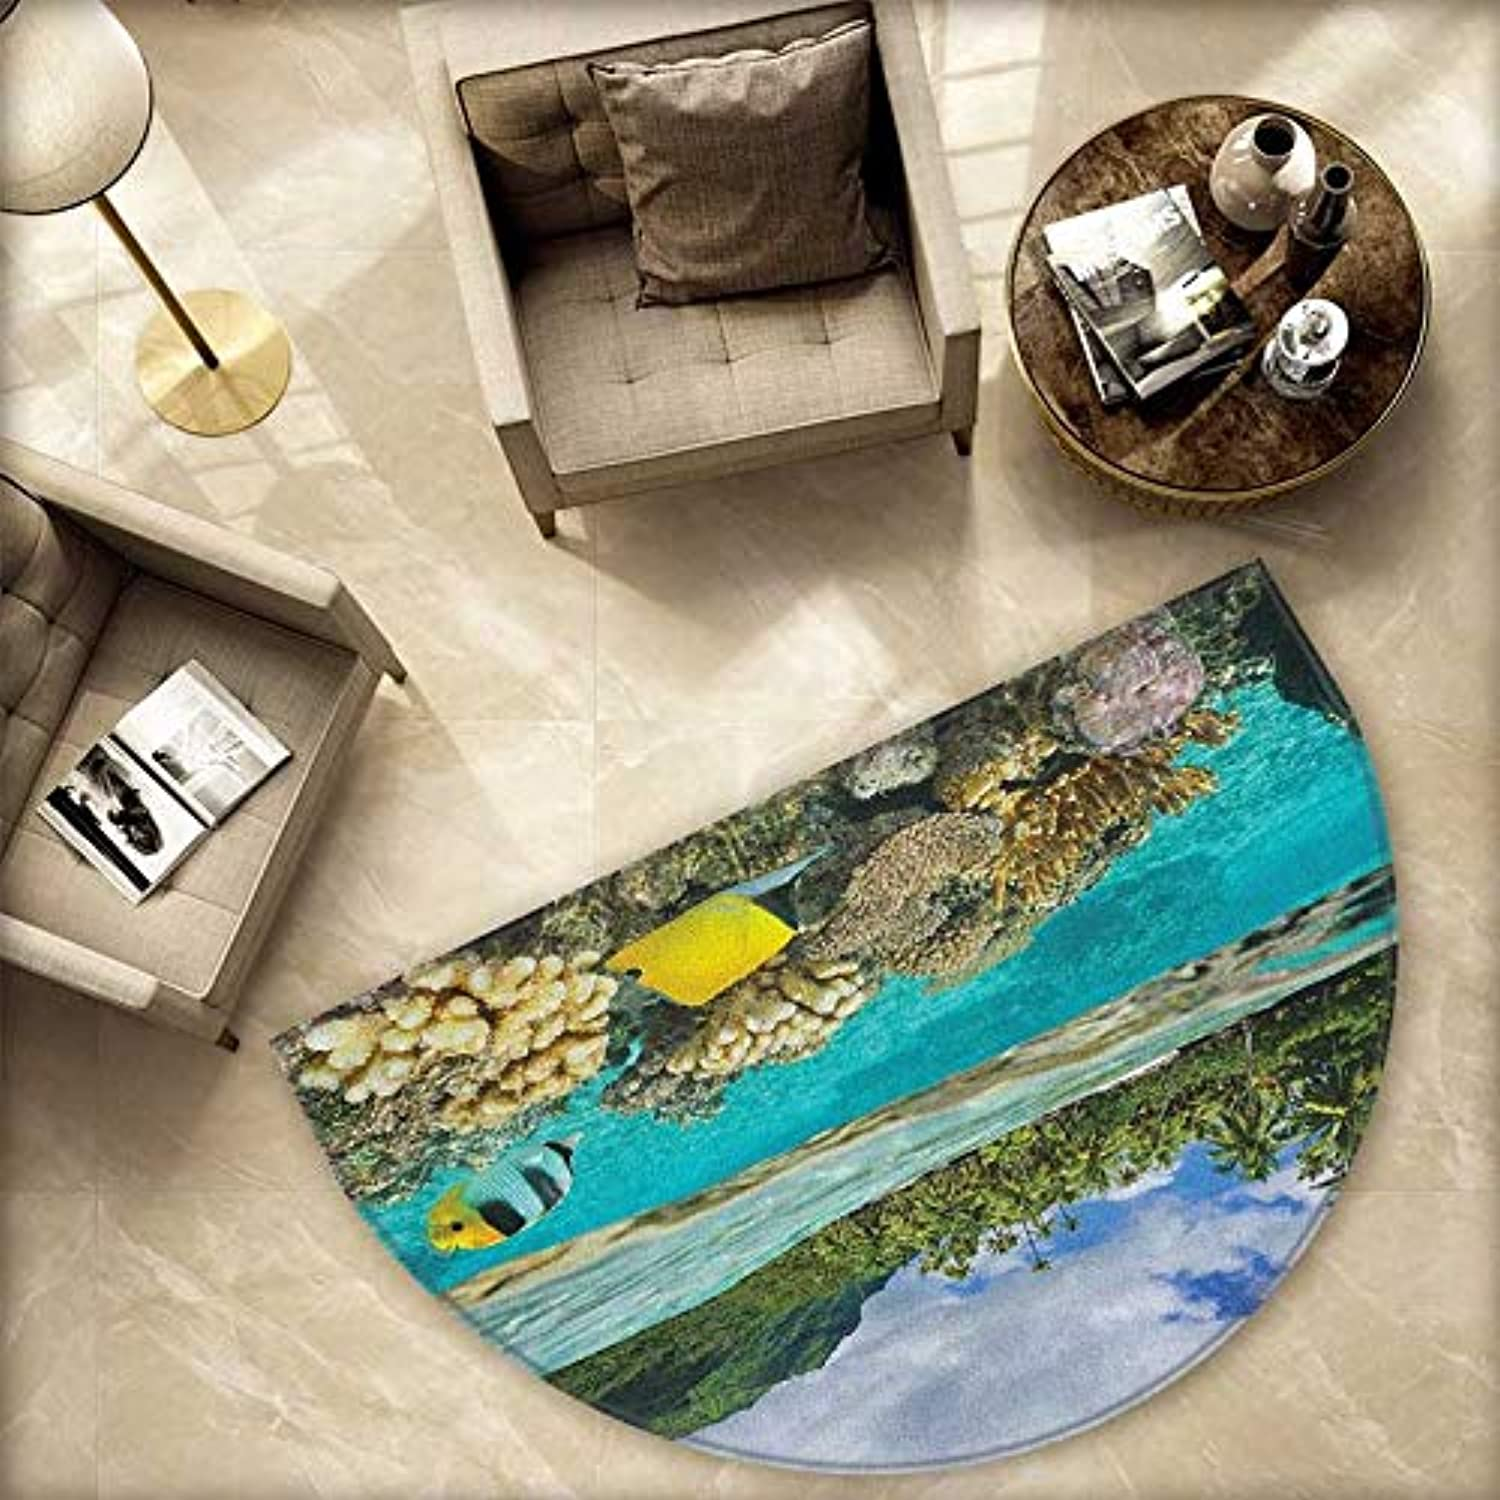 Island Semicircle Doormat Pacific Ocean French Polynesia Lagoon of Huahine Lush Shore with Corals and Fish Halfmoon doormats H 78.7  xD 118.1  Multicolor